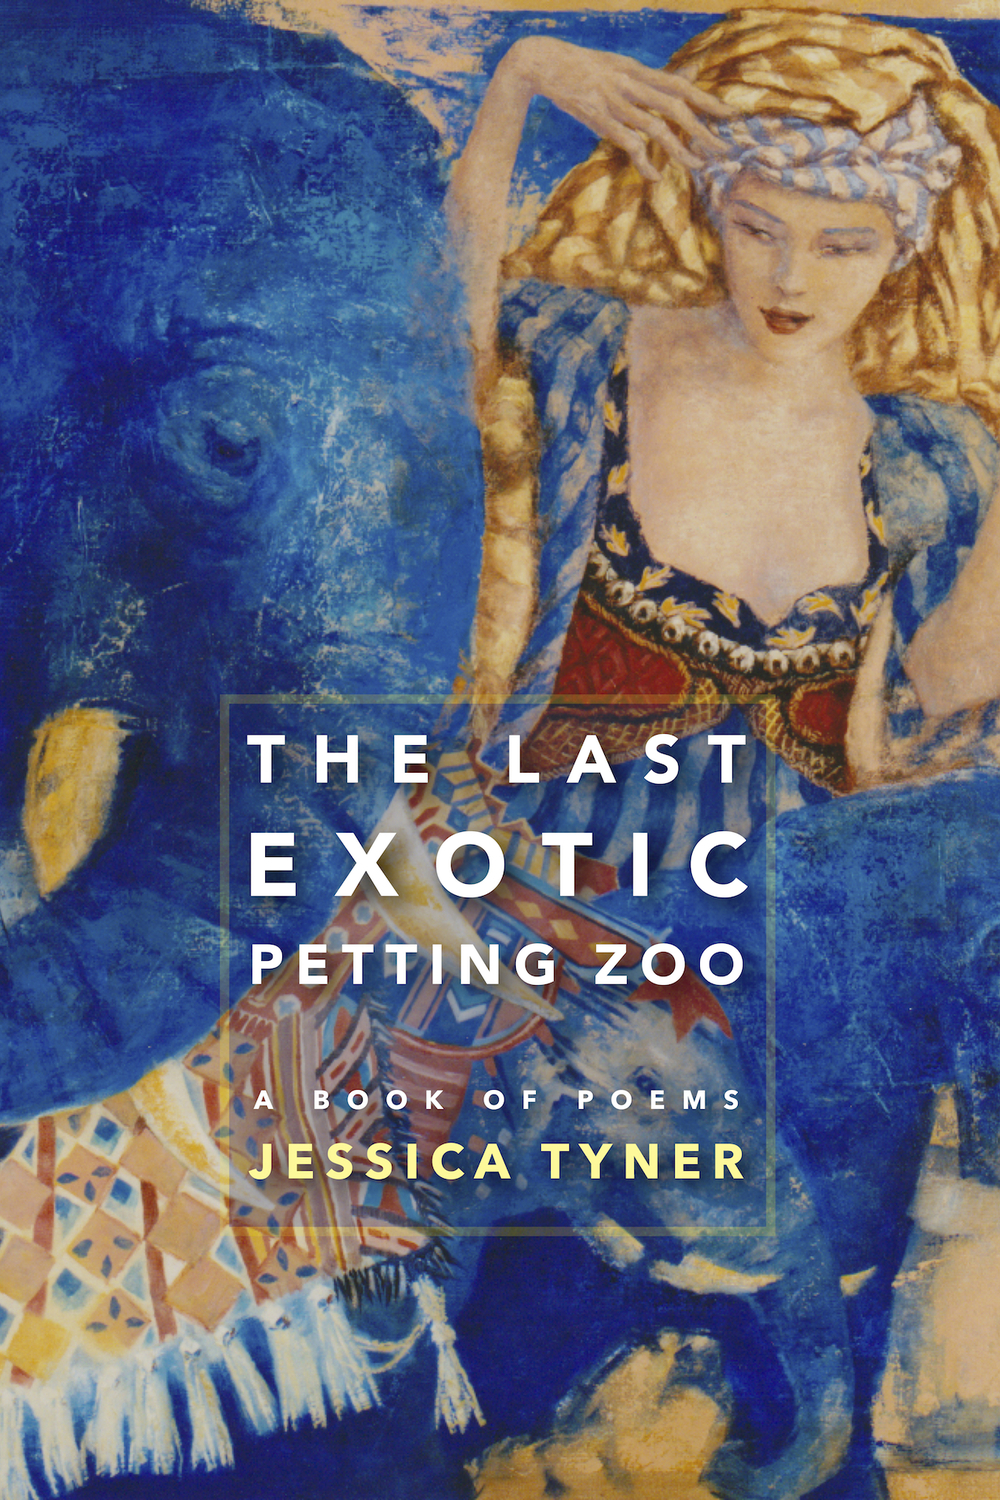 The Last Exotic Petting Zoo - FrontCover - Final.jpg